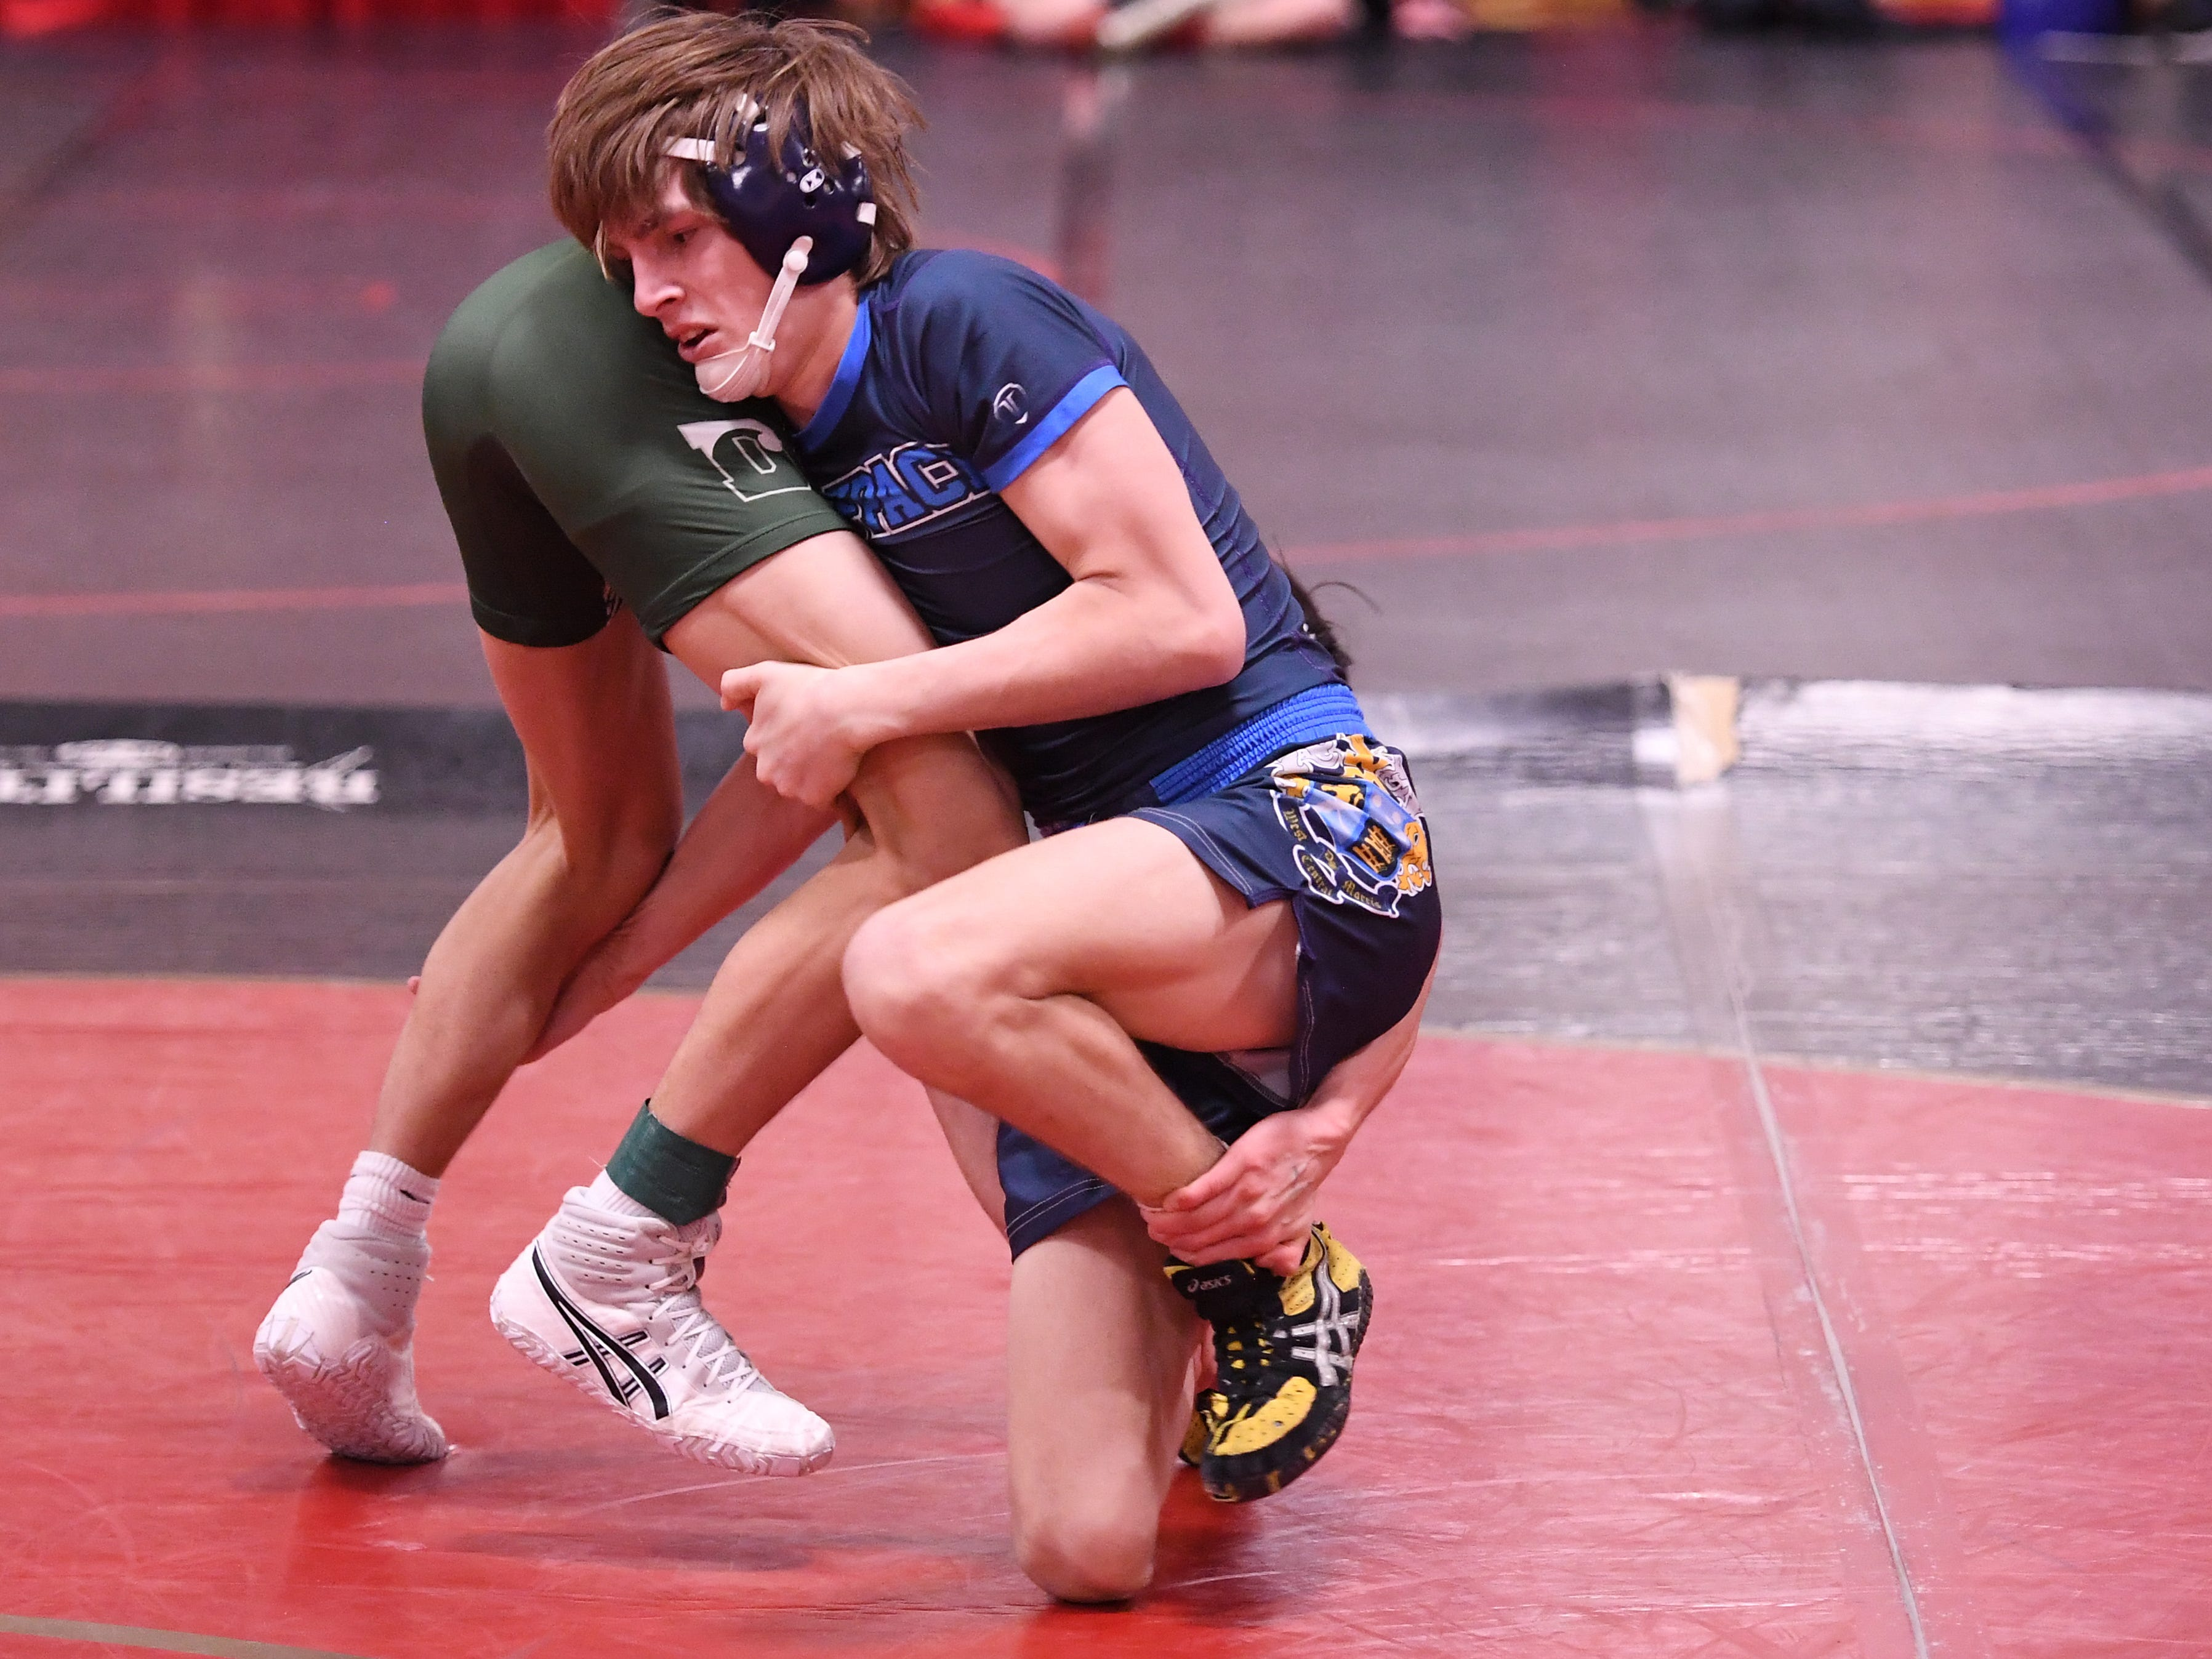 Eli Shepard of West Morris on his way to defeating Jack Sharma of Delbarton in their 132-pound match at the Morris County Tournament wrestling opening round at  Mount Olive High School on Friday, January 25, 2019.